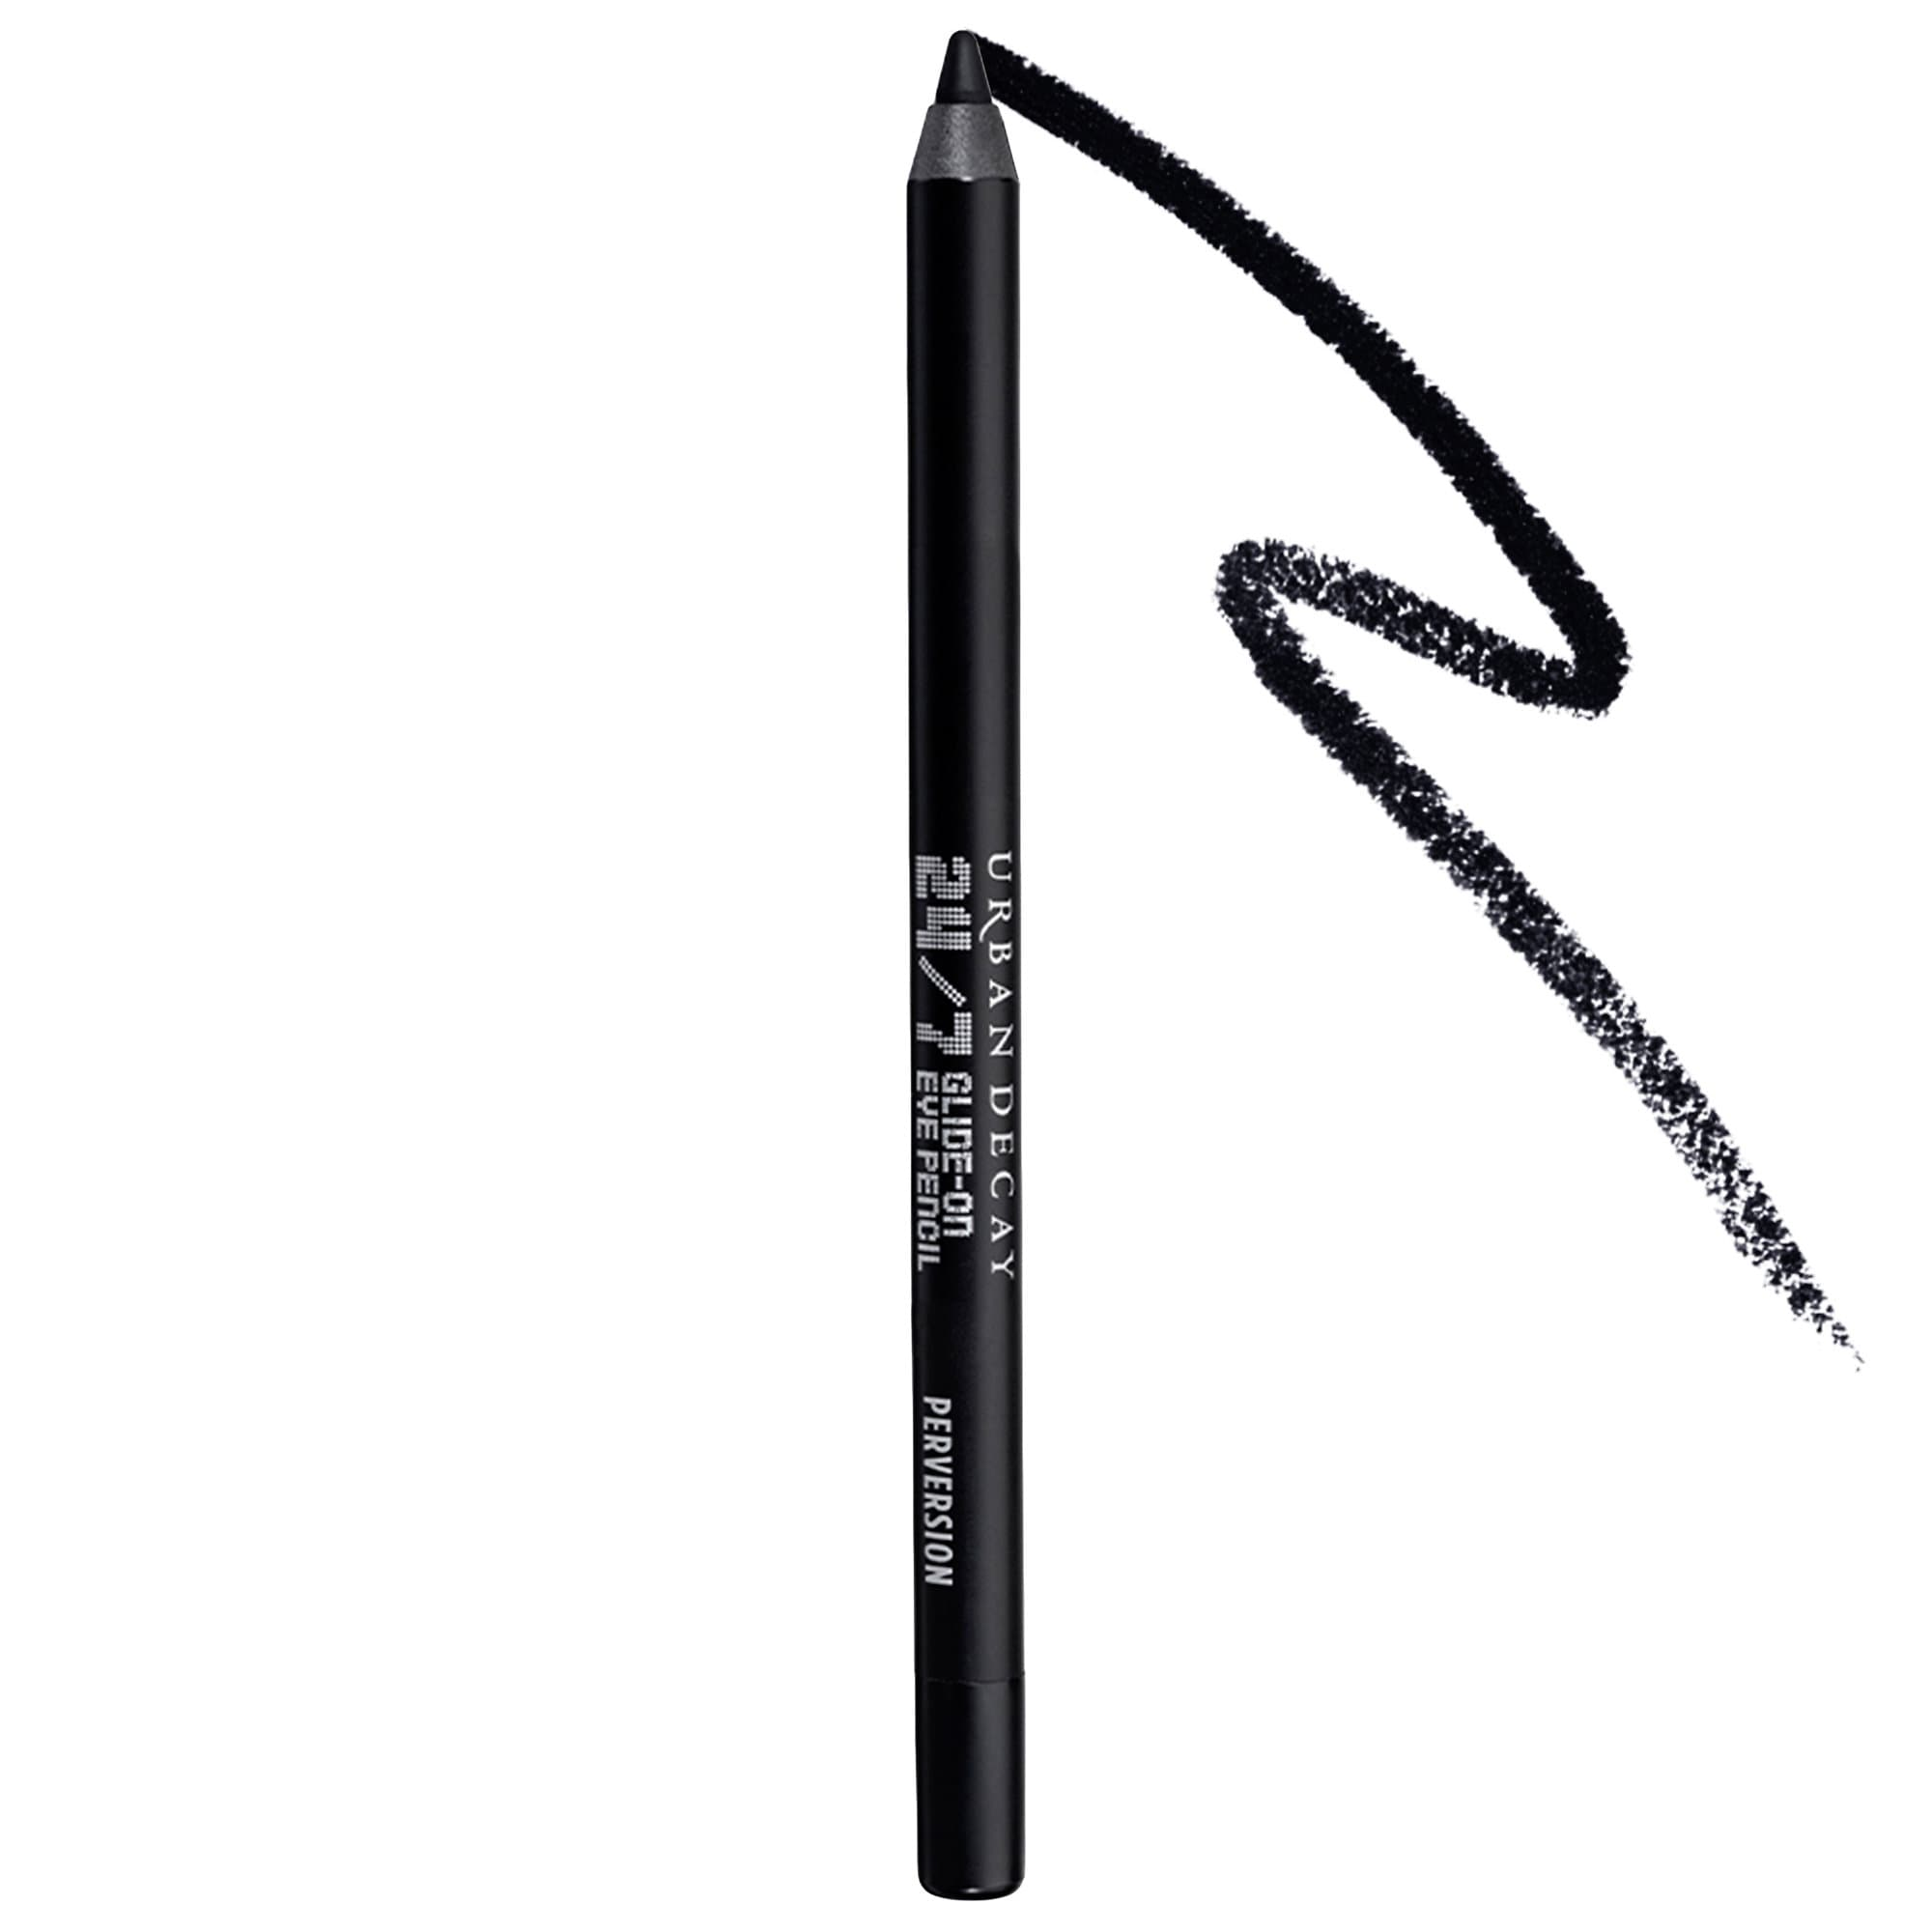 Urban Decay - 24/7 Glide-On Eye Pencil